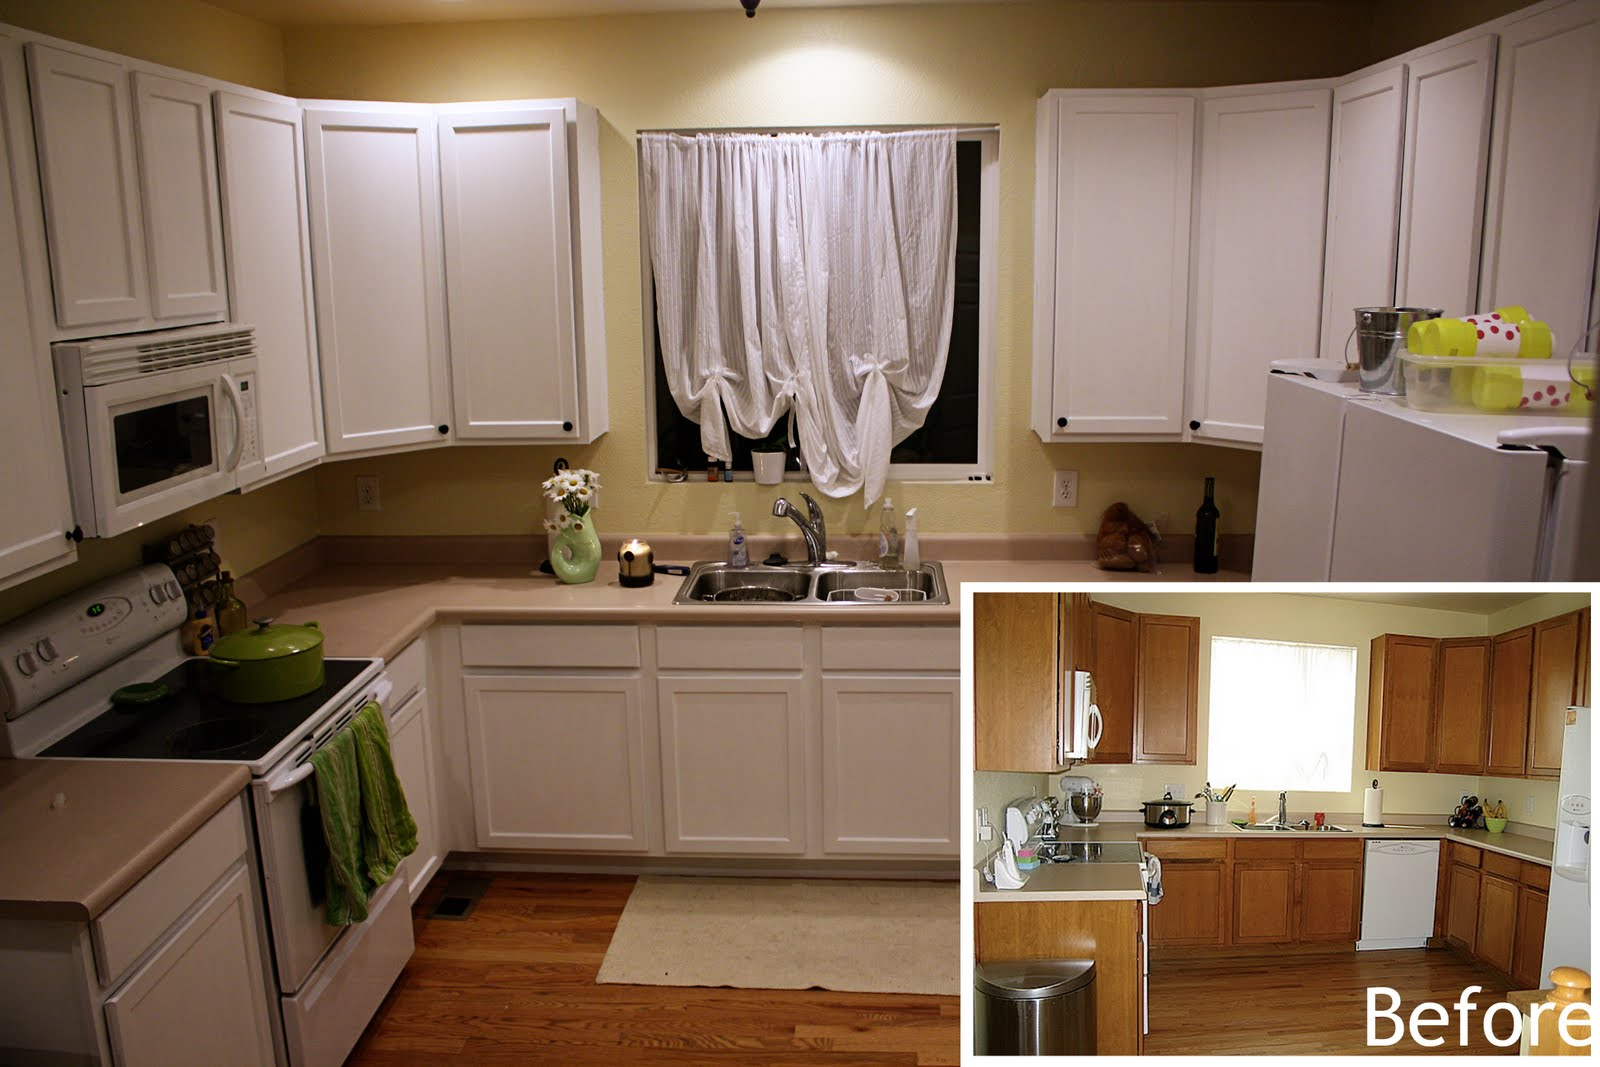 rustoleum cabinet transformations pure white paint it like new. Black Bedroom Furniture Sets. Home Design Ideas